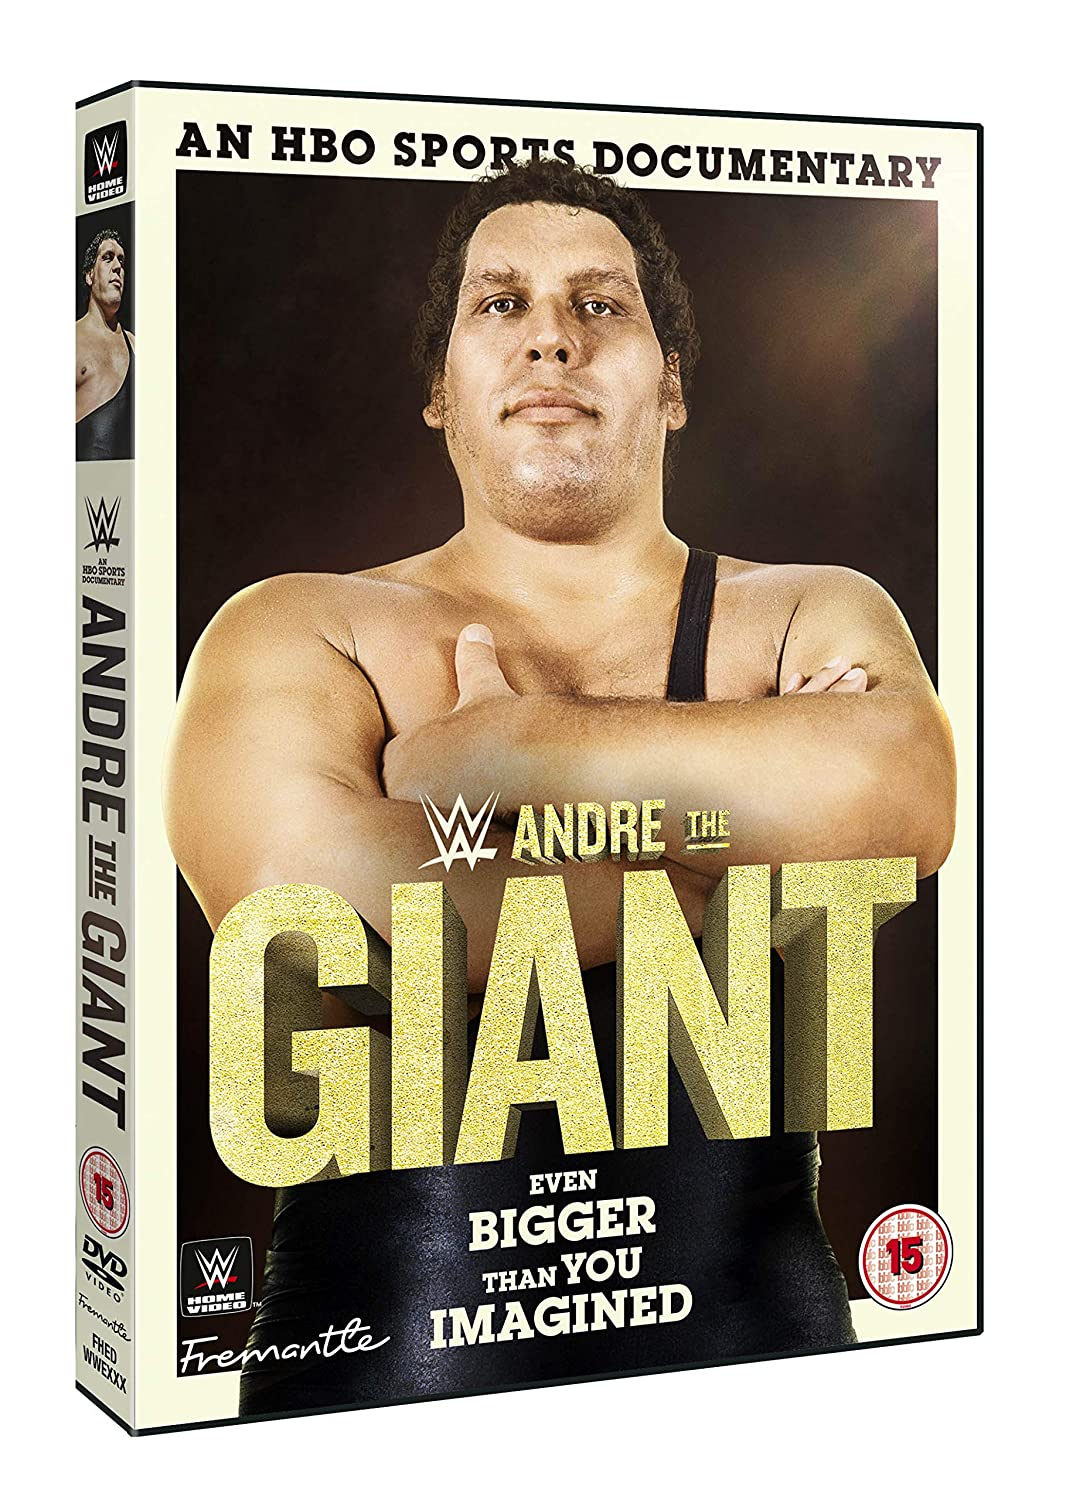 WWE: Andre The Giant [DVD] [Reino Unido]: Amazon.es: Andre the Giant, Hulk Hogan, Arnold Schwarzenegger, Big John Stud, Andre the Giant, Hulk Hogan: Cine y Series TV